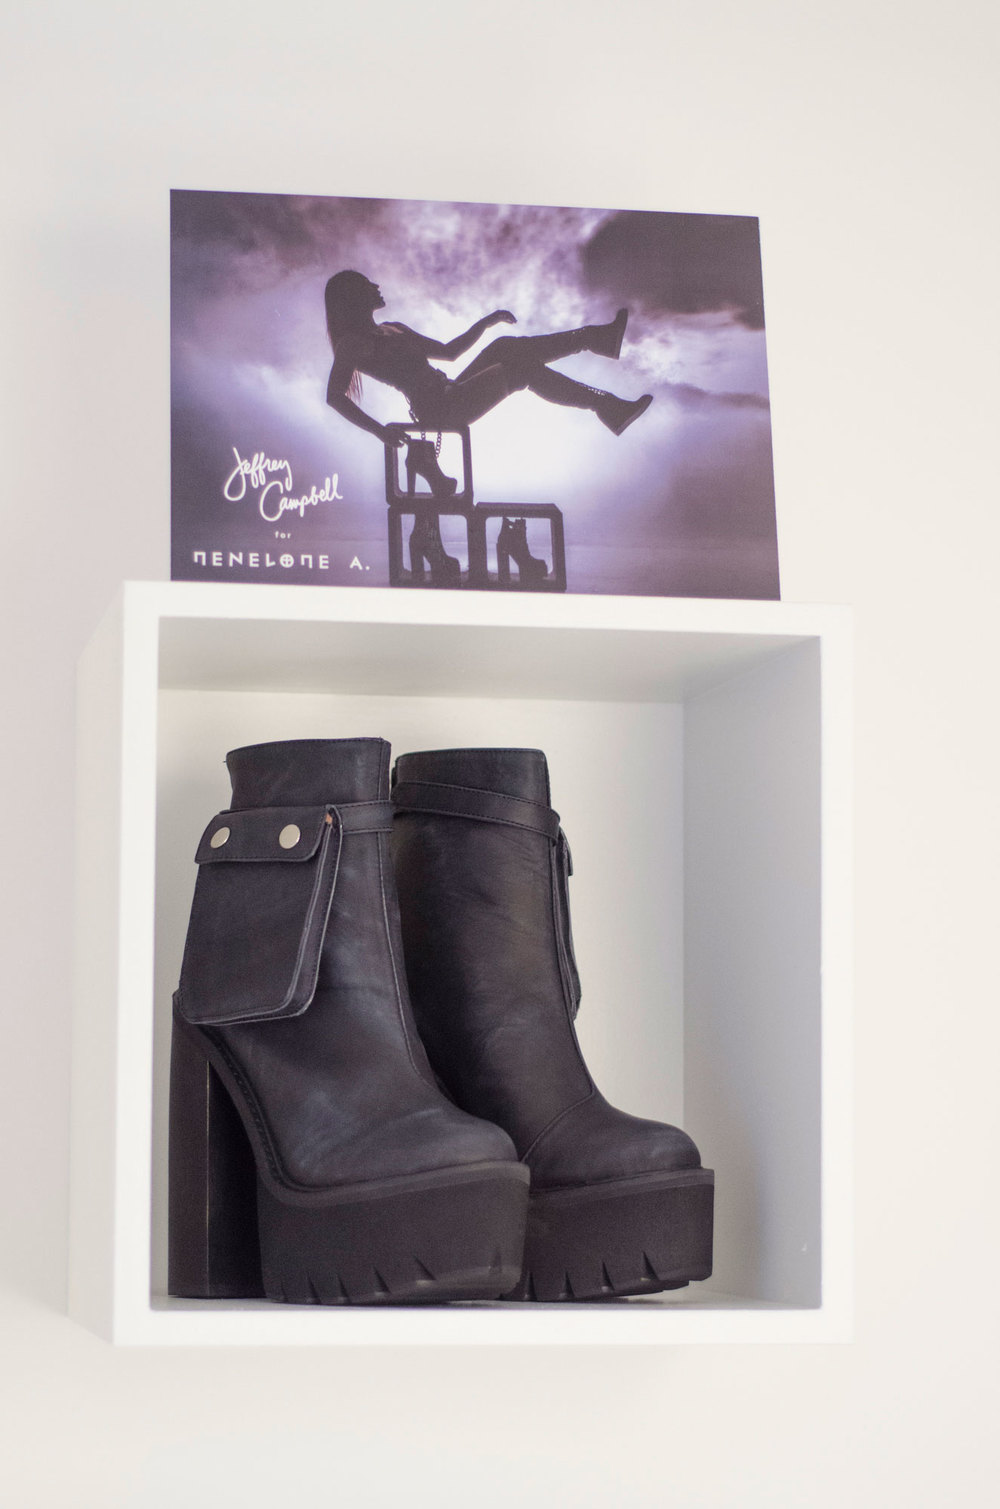 jeffrey-campbell-for-penelope-a jeffrey campbell lollapalooza boots.jpg